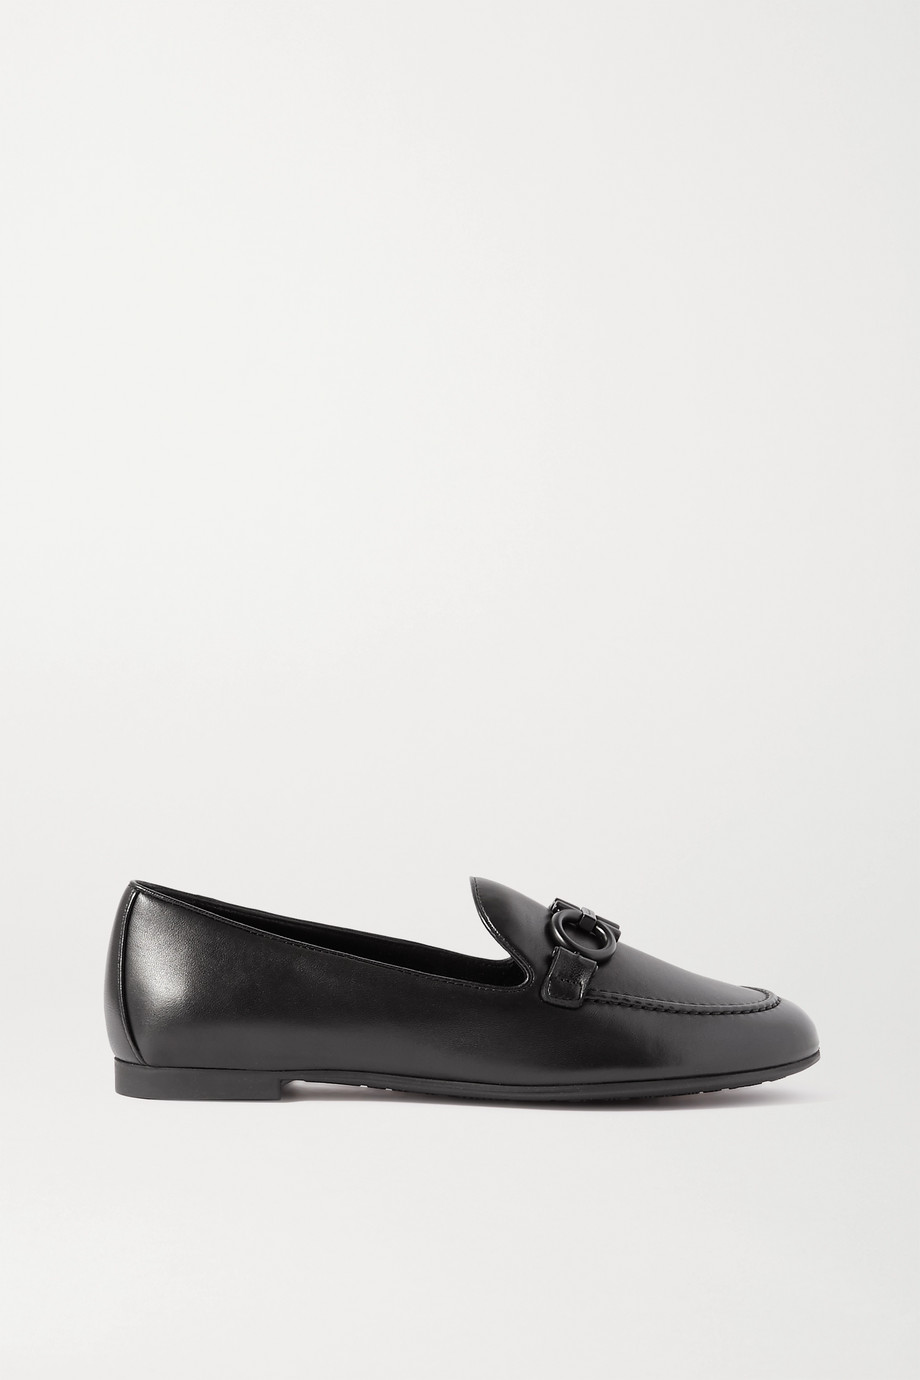 Salvatore Ferragamo Embellished leather loafers